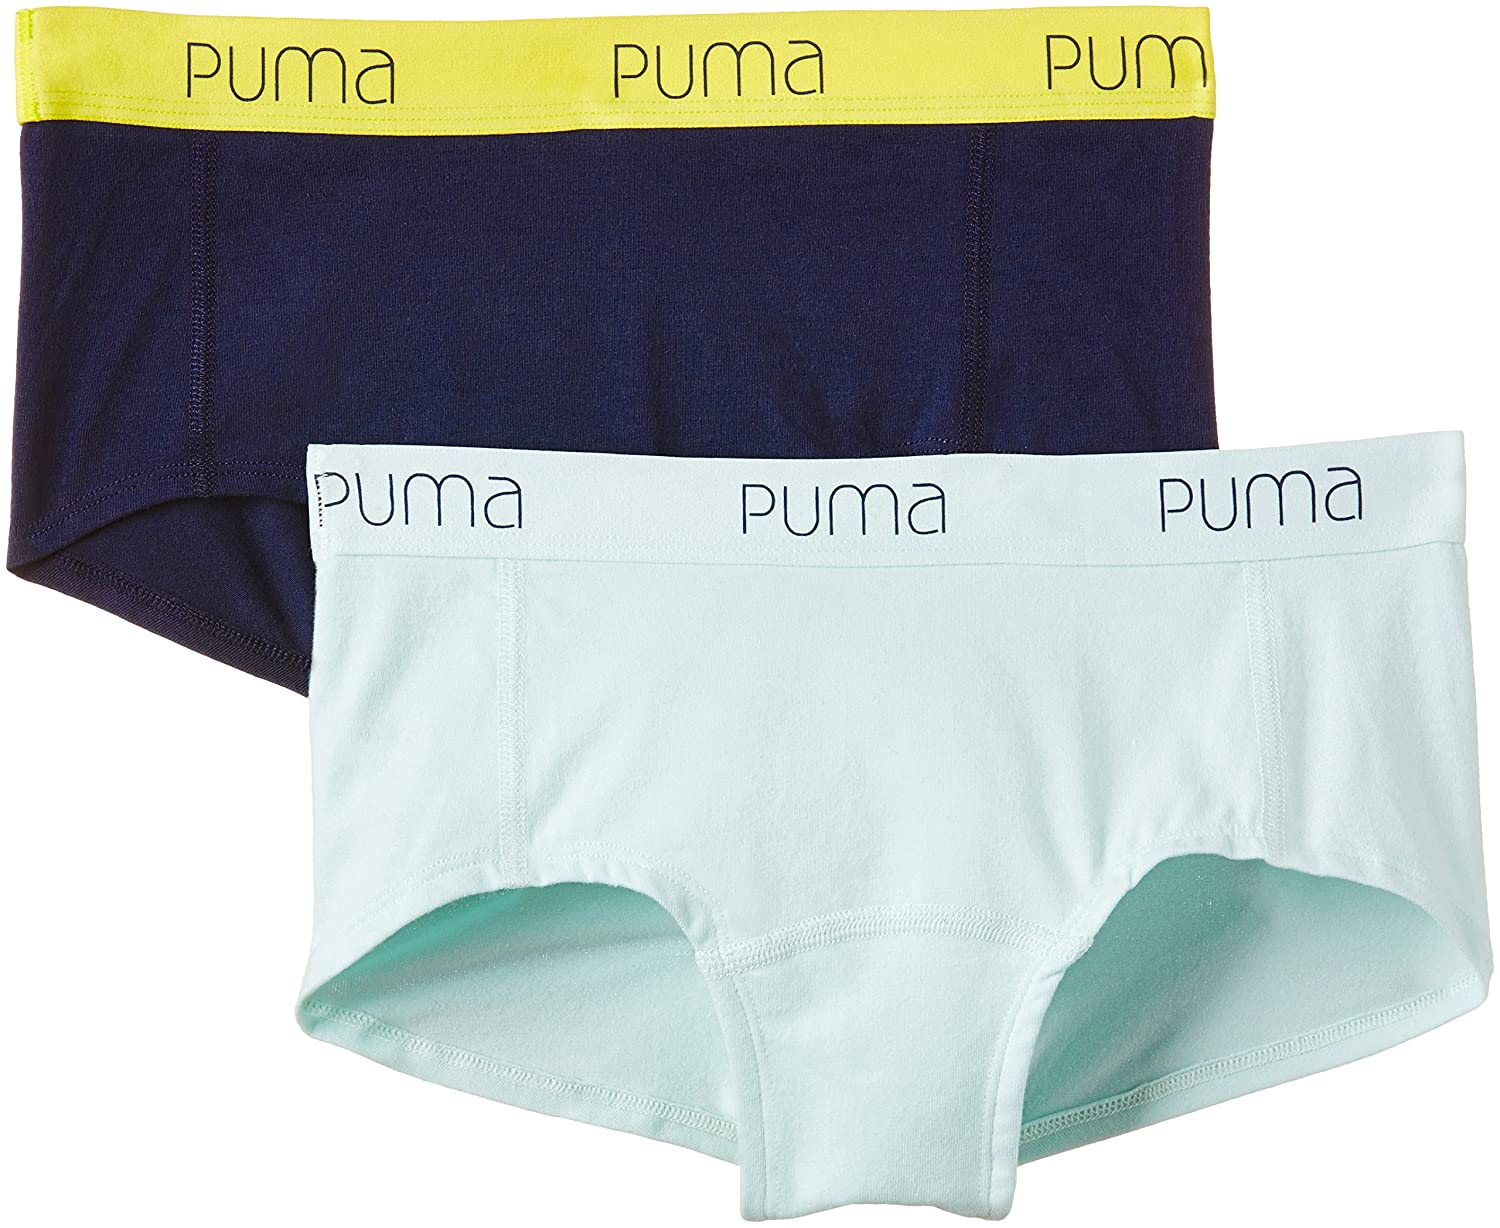 Puma Damen Mini Shorts Basic 2er Pack Black XS 643052001